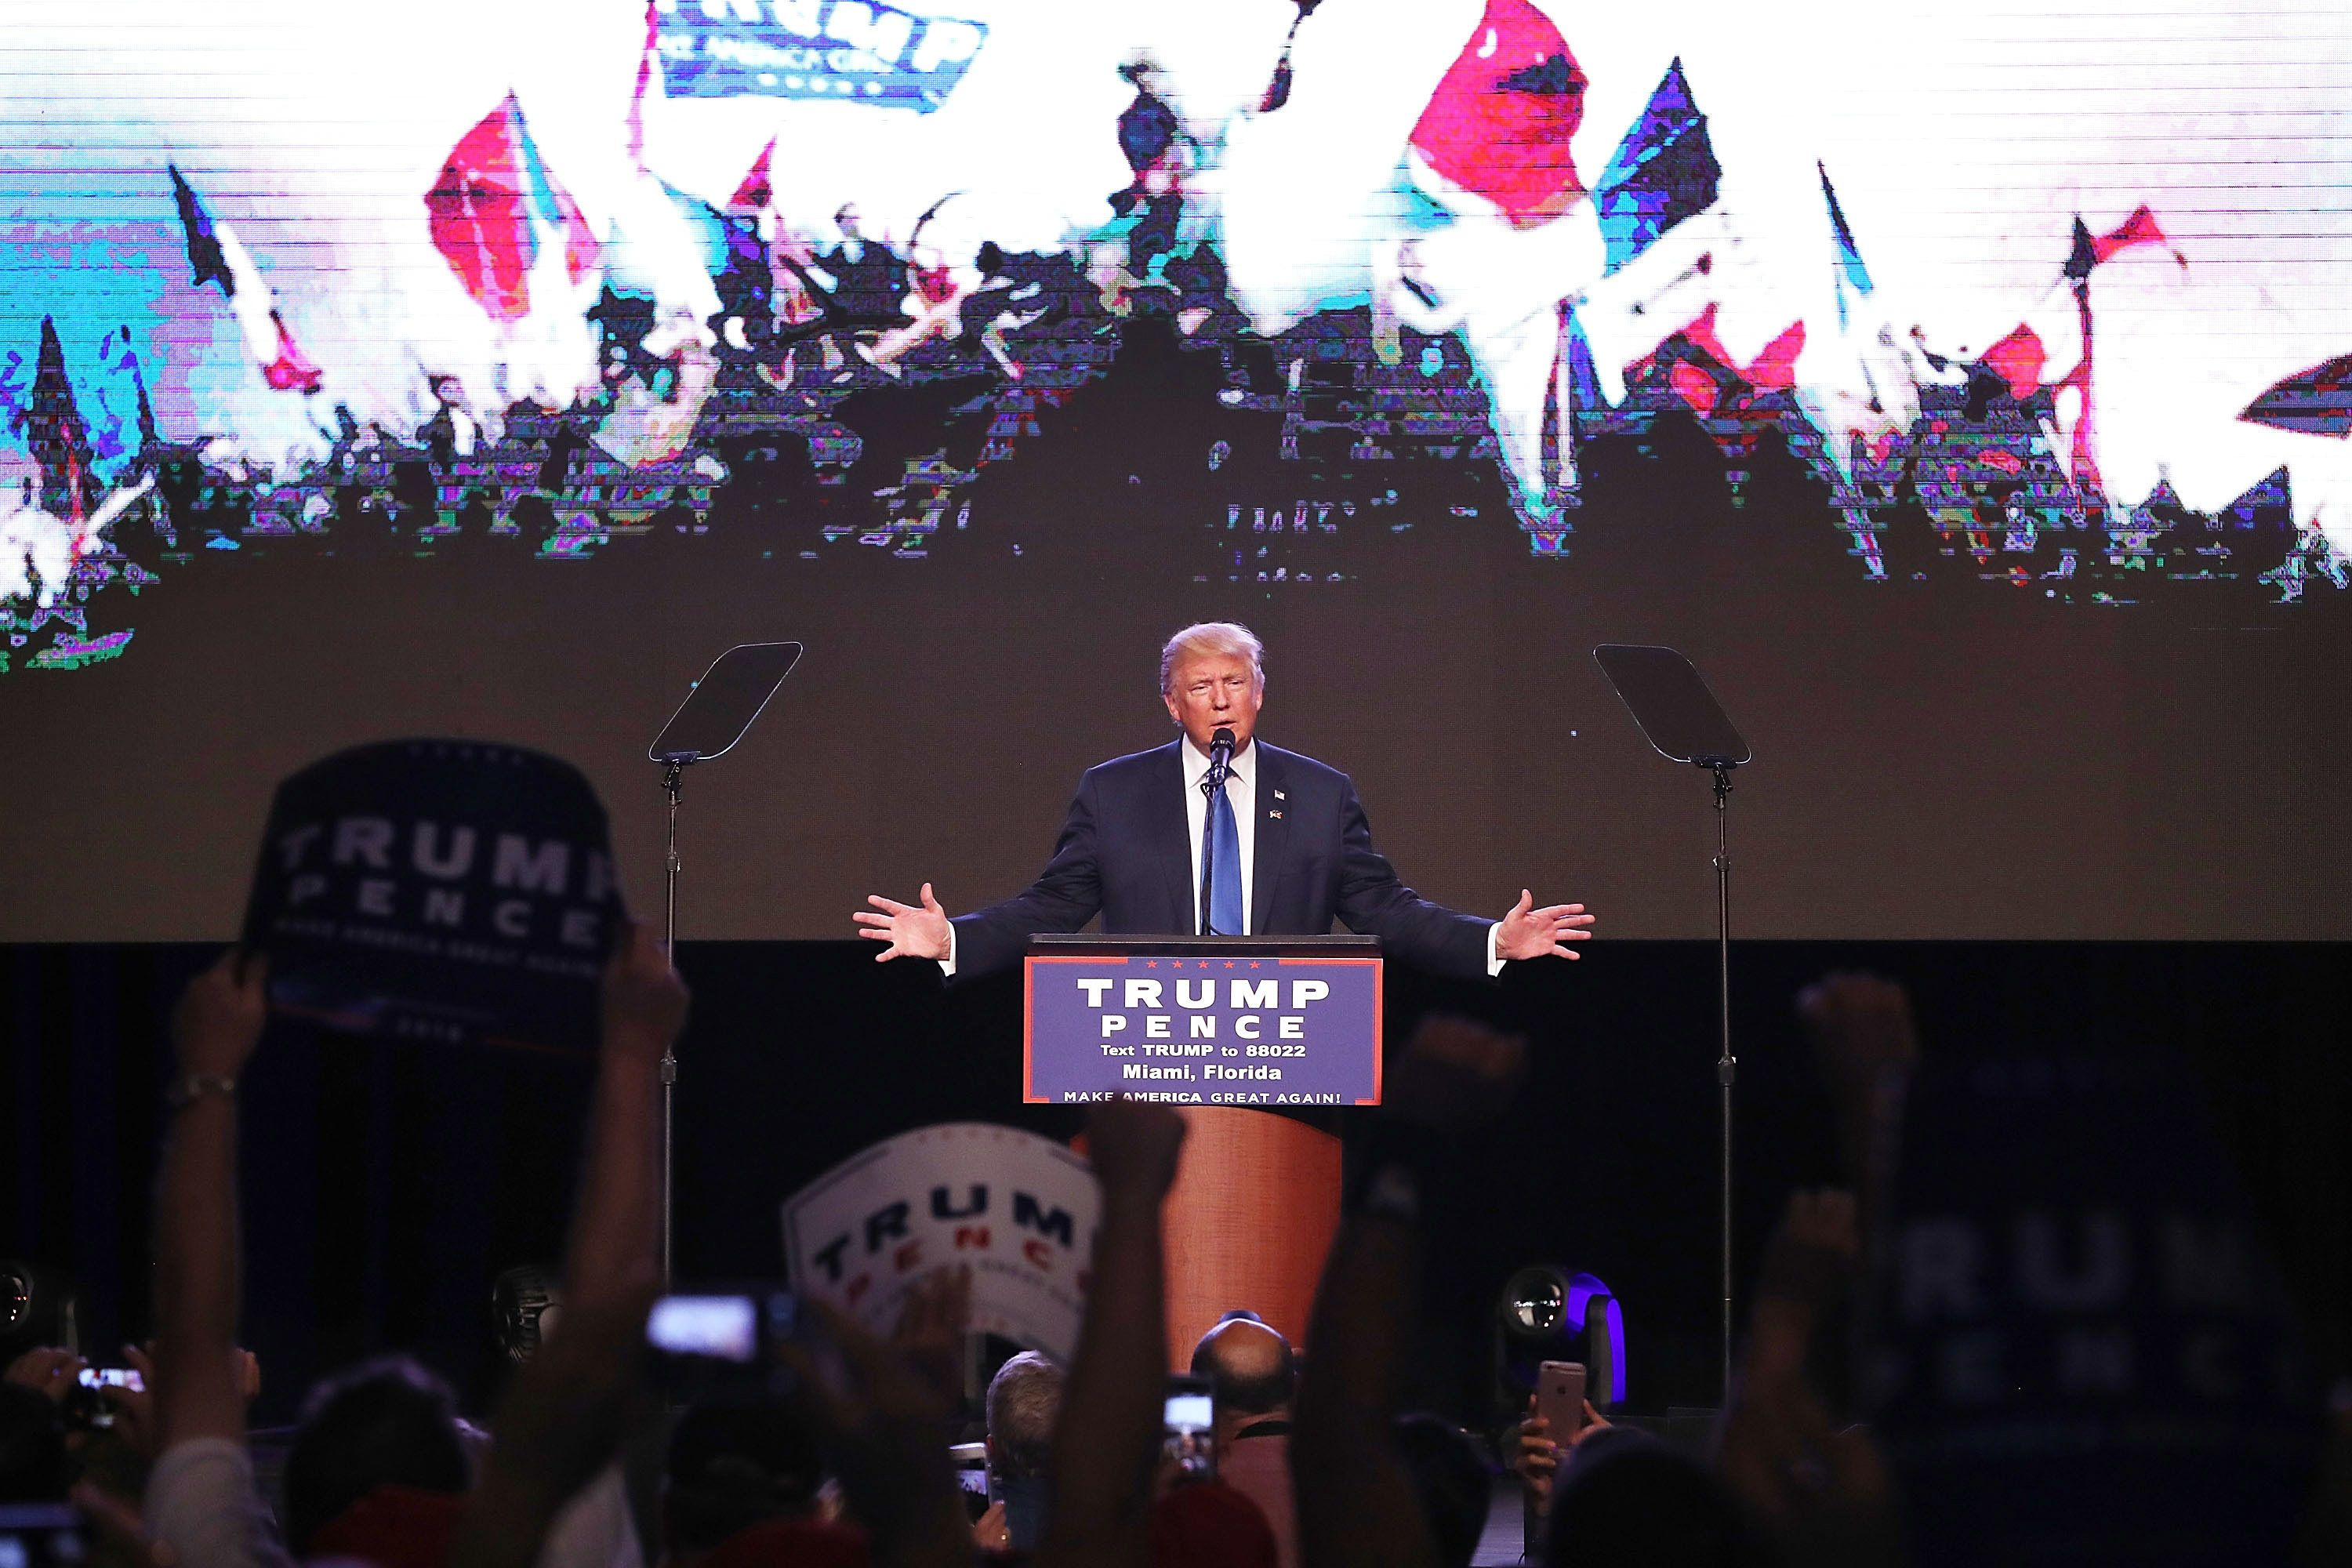 Donald Trump spoke at a rally in Miami on